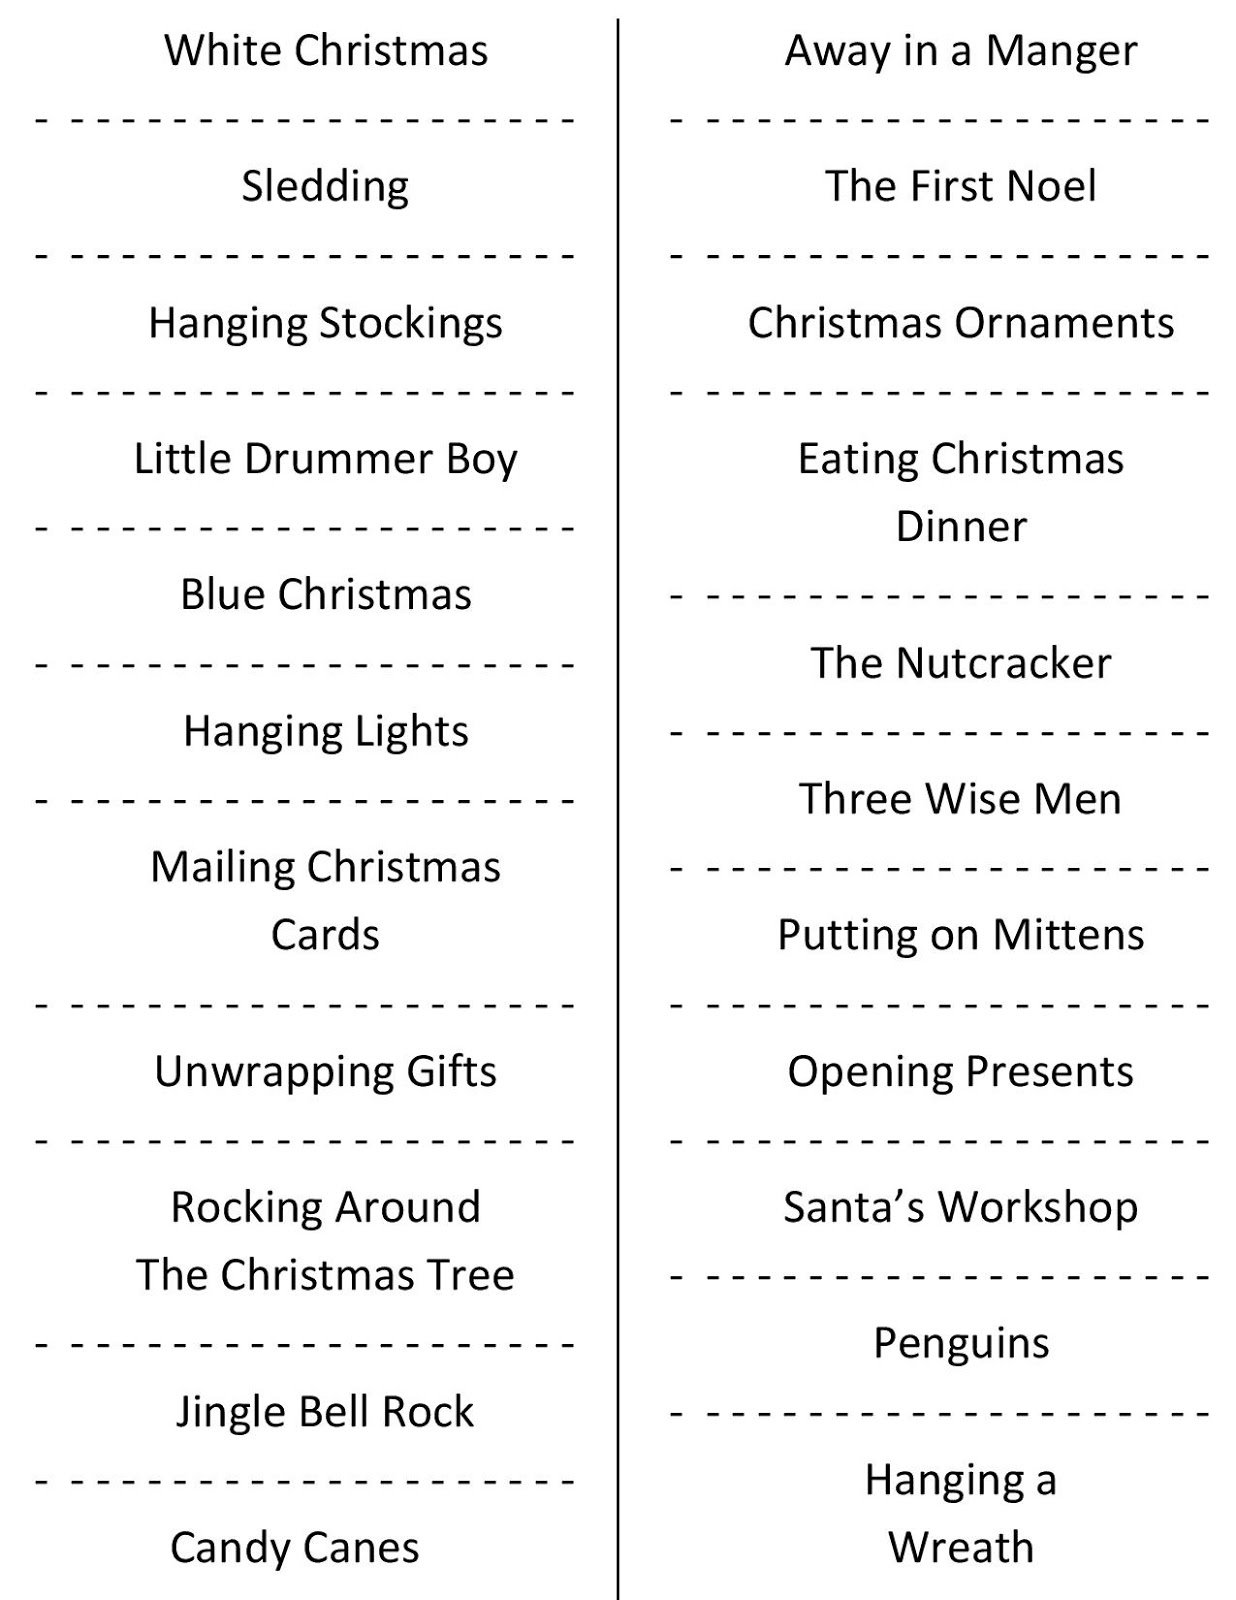 10 Stylish Funny Charades Ideas For Adults christmas charades free printable party game 3 2020